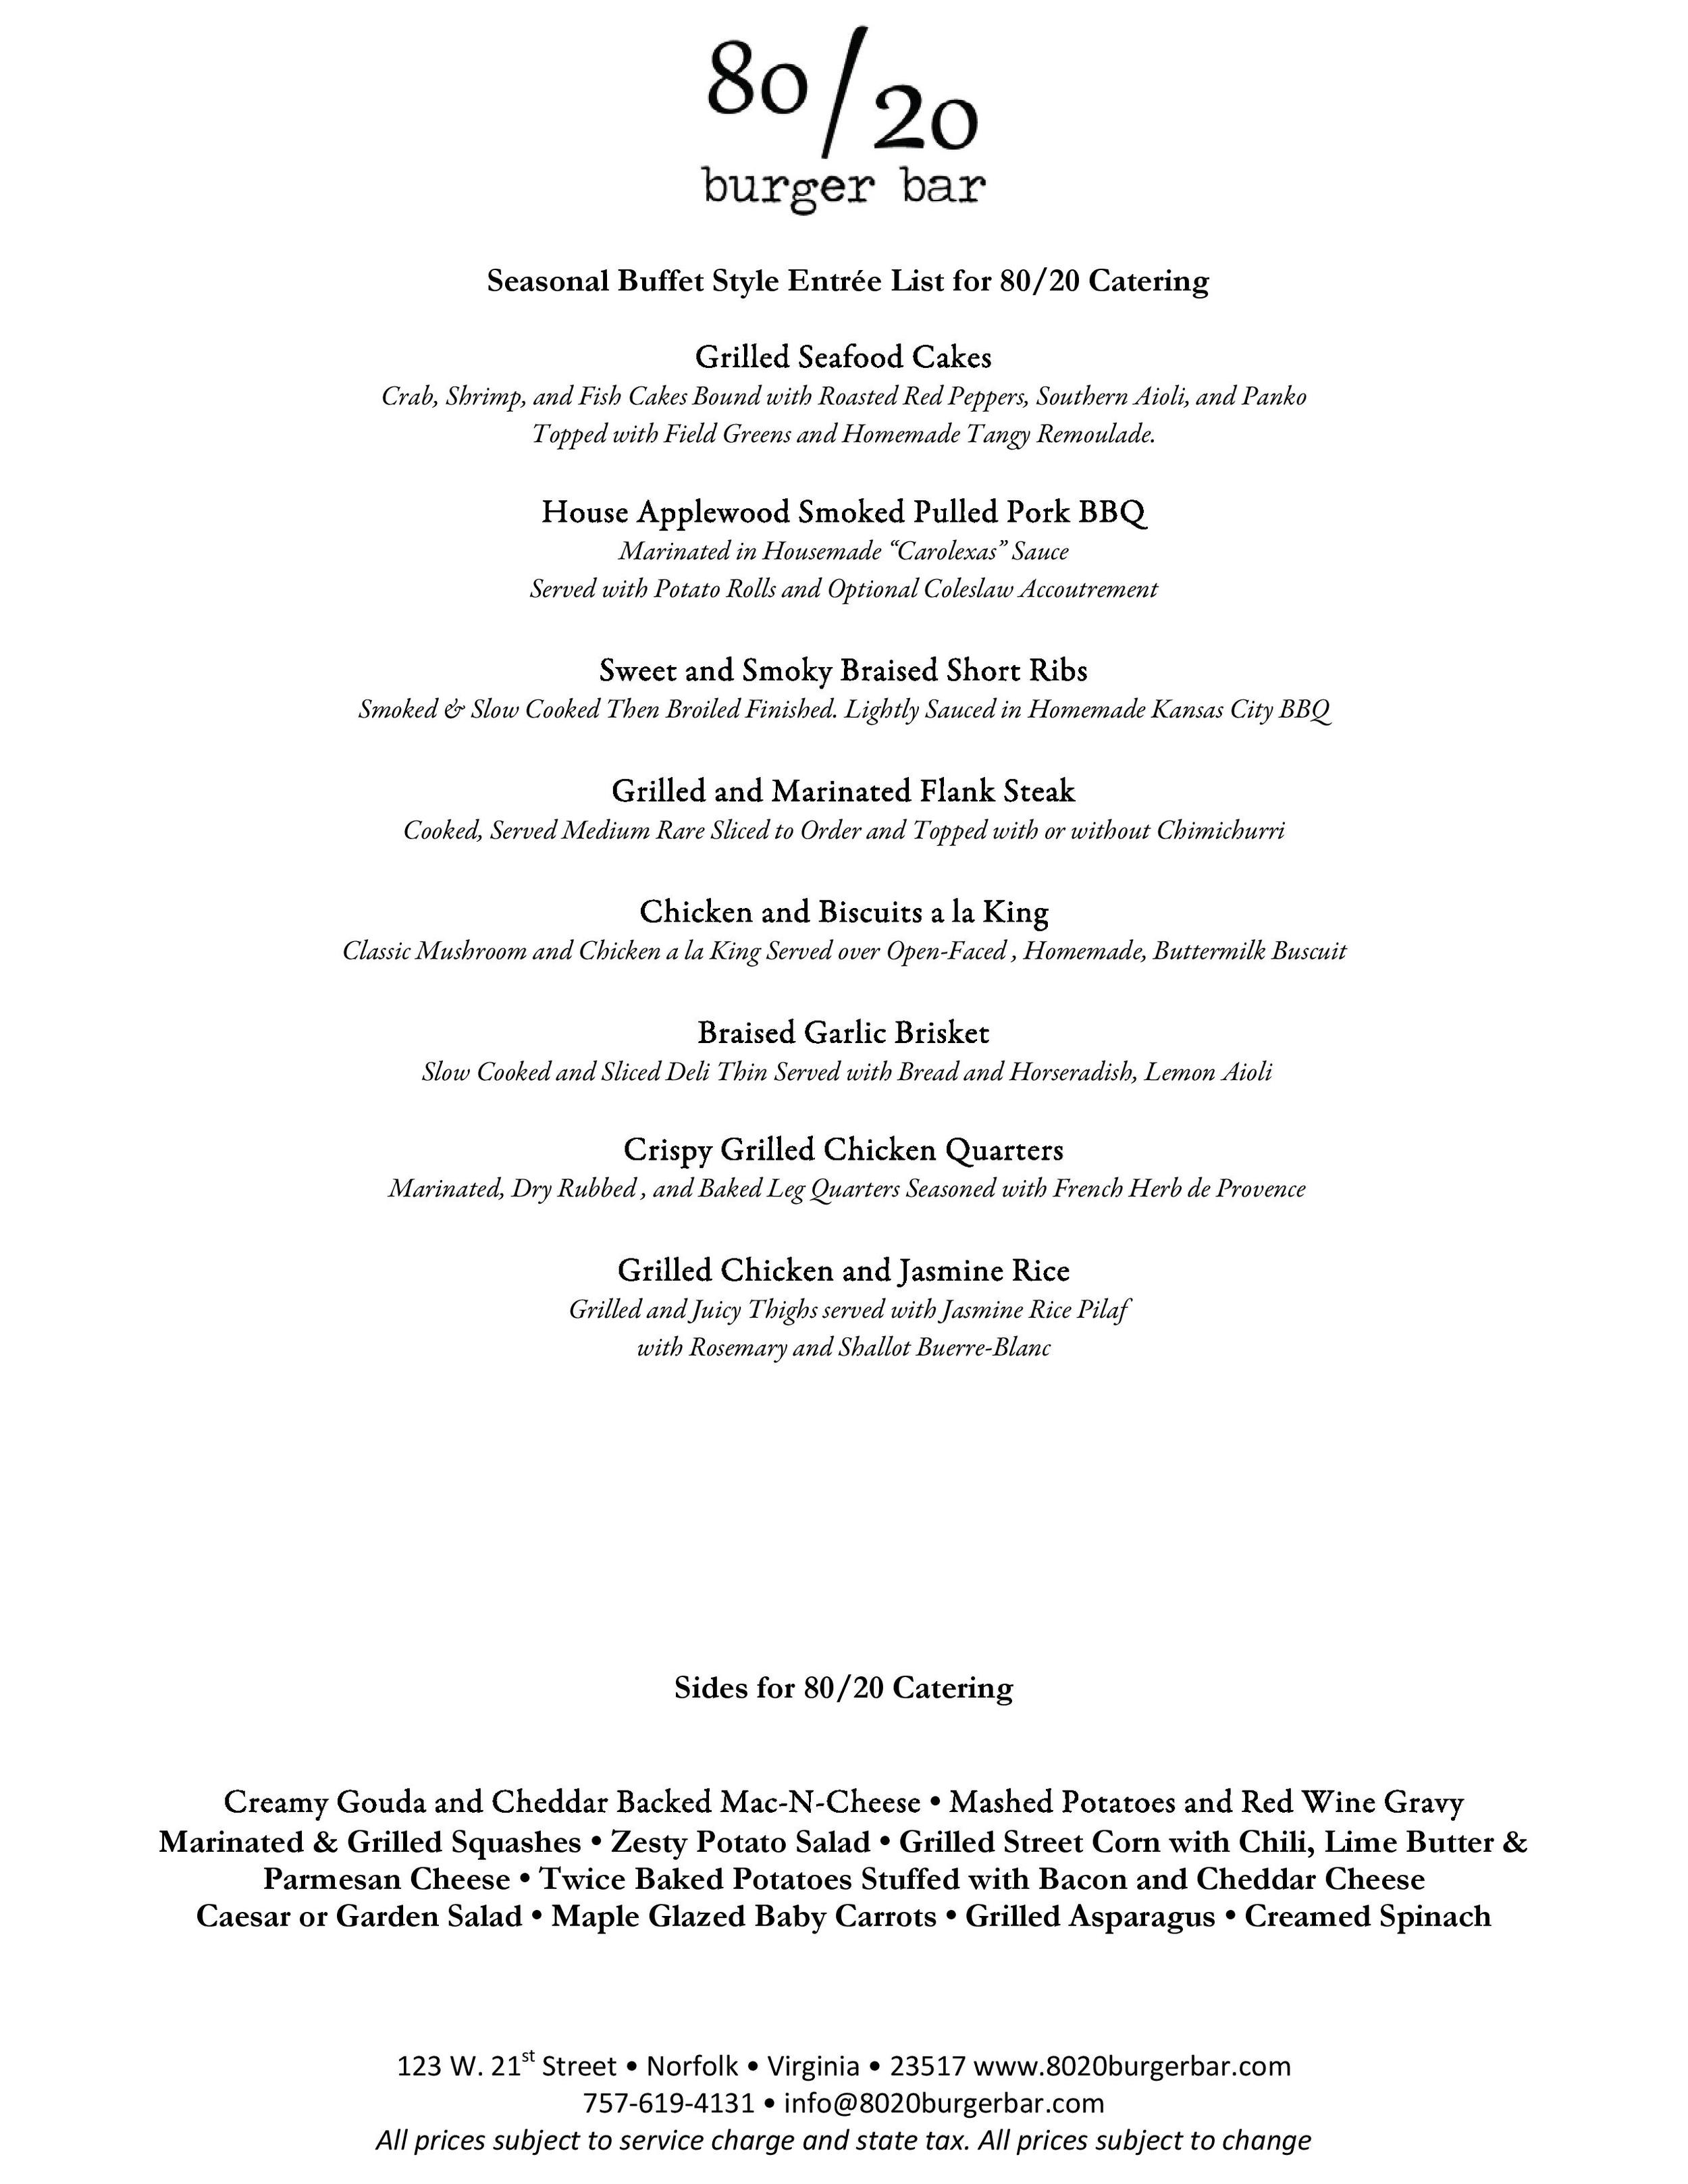 Catering Docs and Menus (for distribution)-page-002.jpg